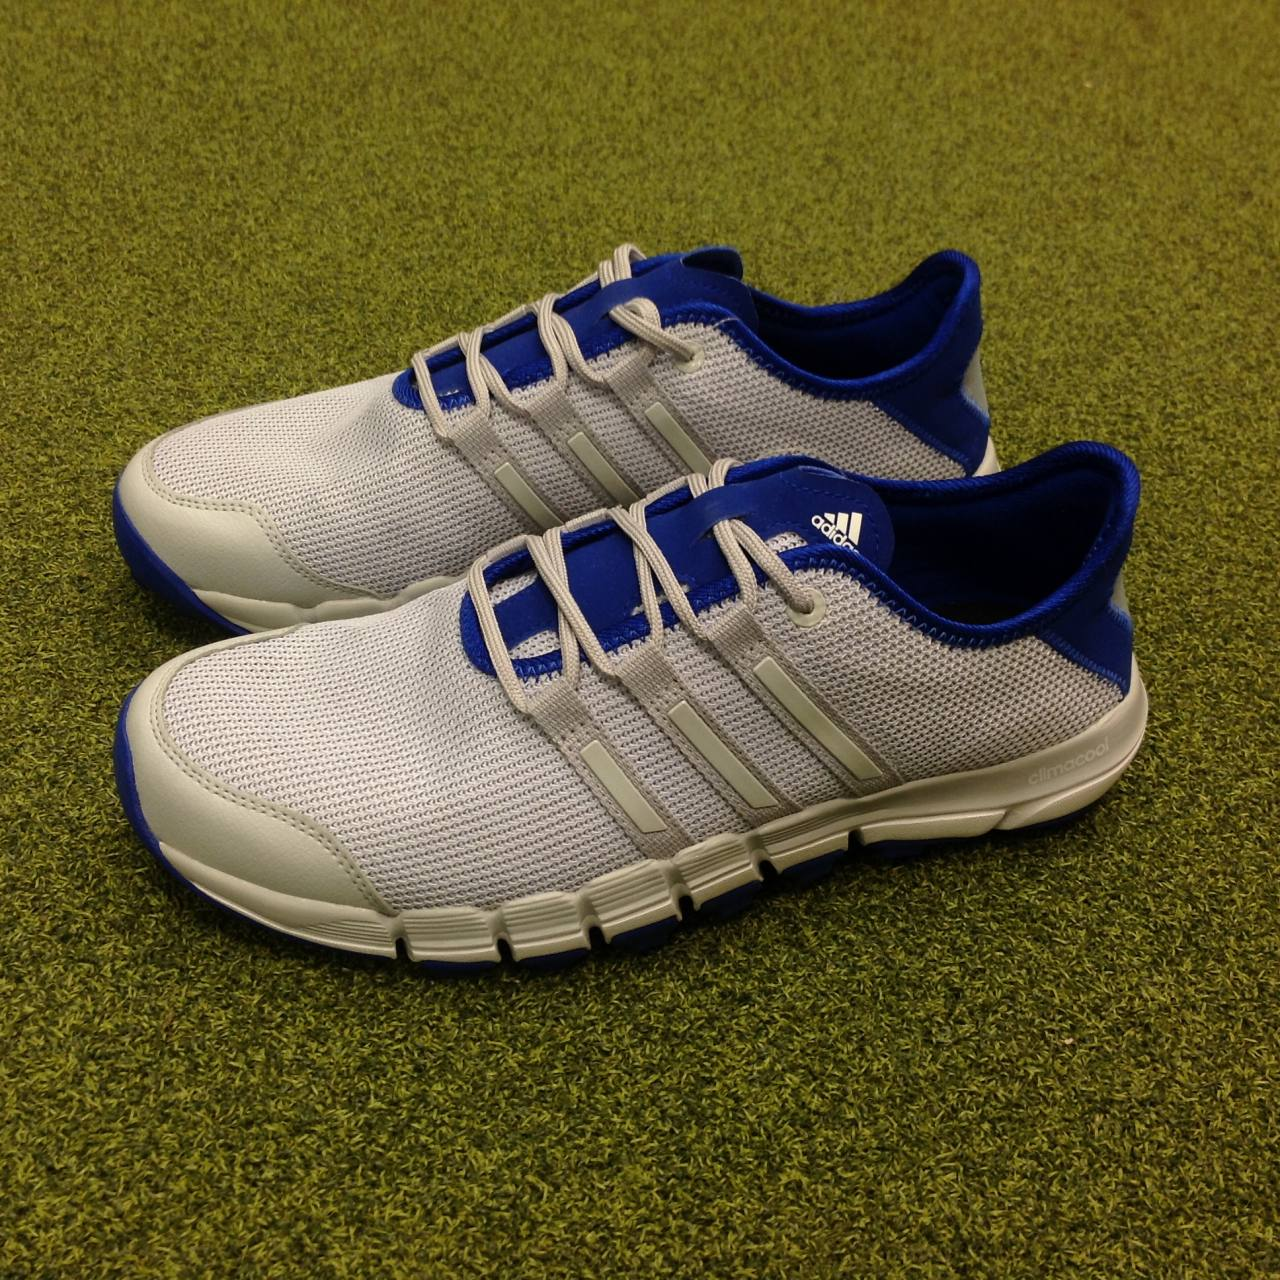 adidas golf climacool street shoes nz